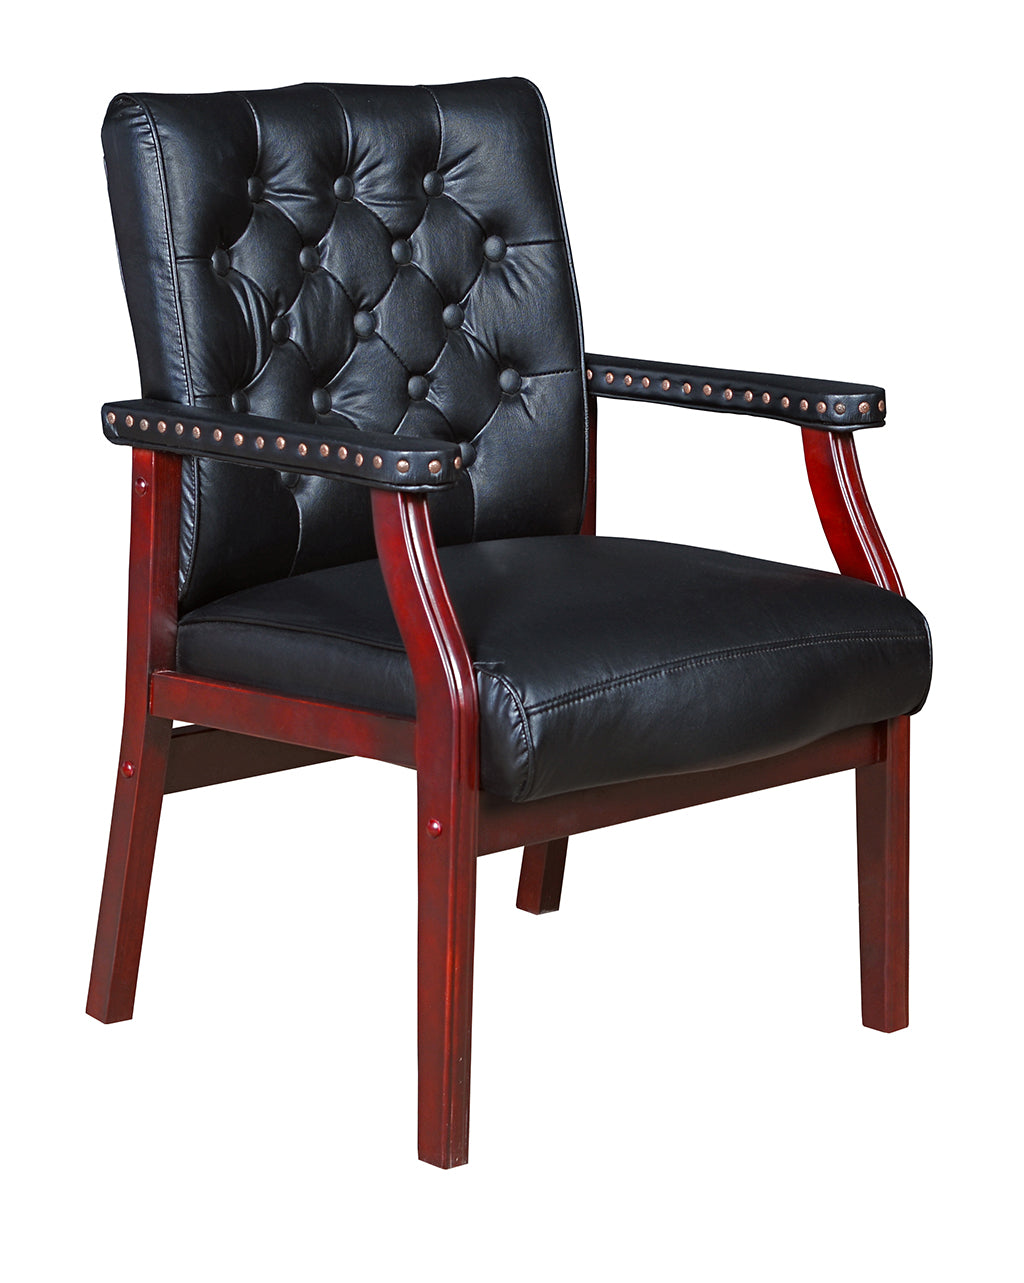 Black Vinyl and Mahogany Conference / Guest Chair